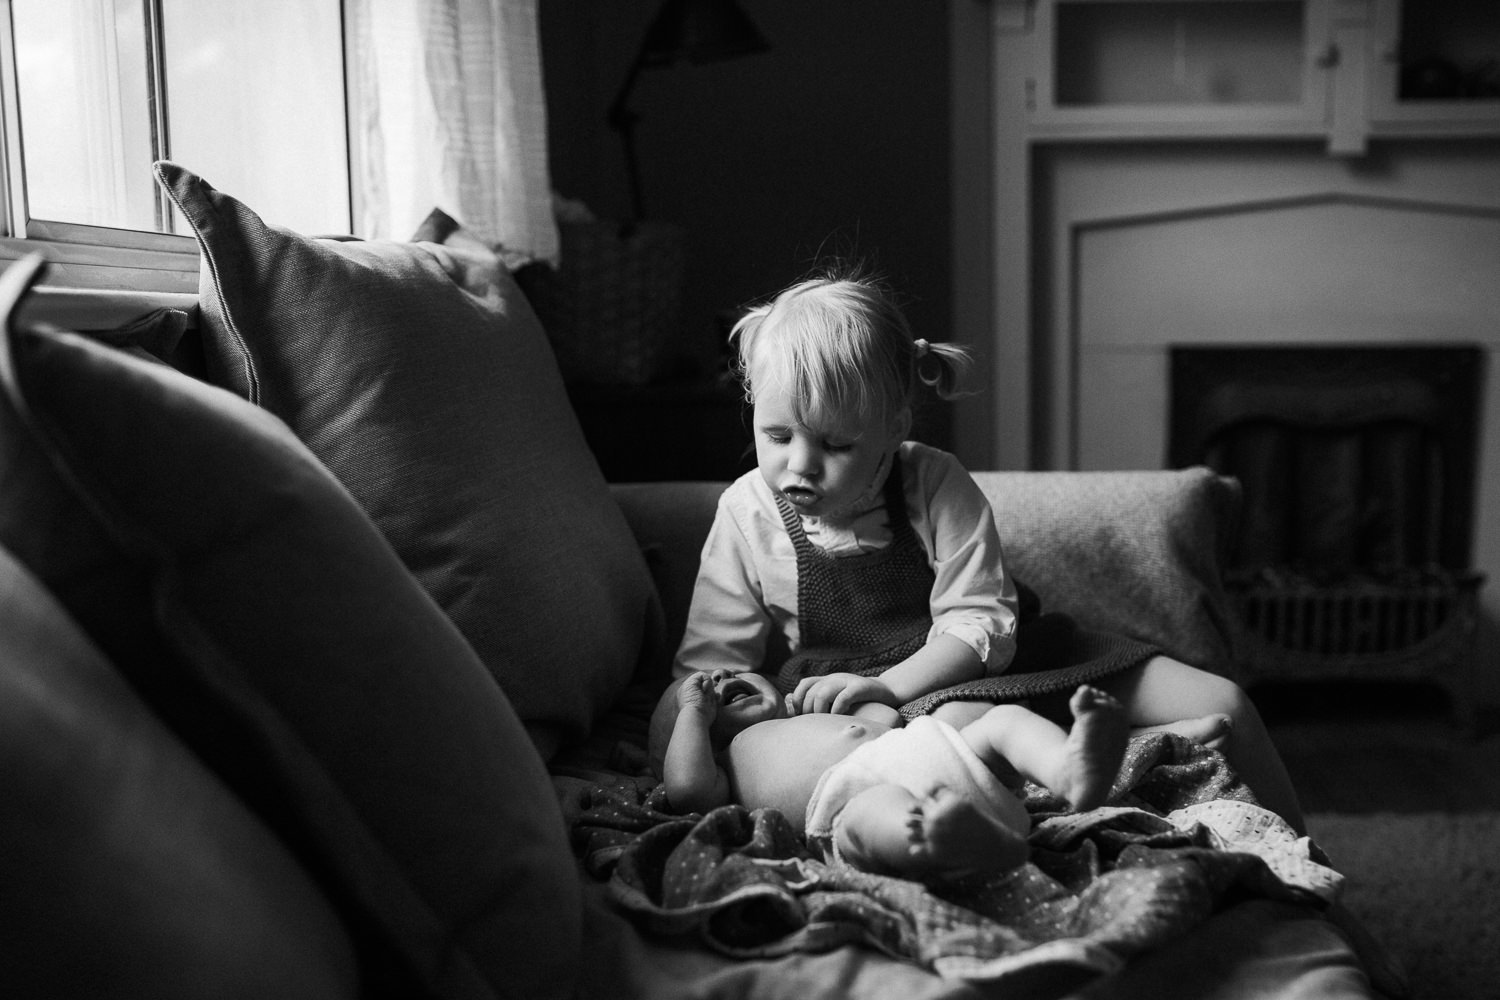 2 year old toddler girl sitting on couch looking at and soothing 10 day old baby brother - Stouffville In-Home Family Photos